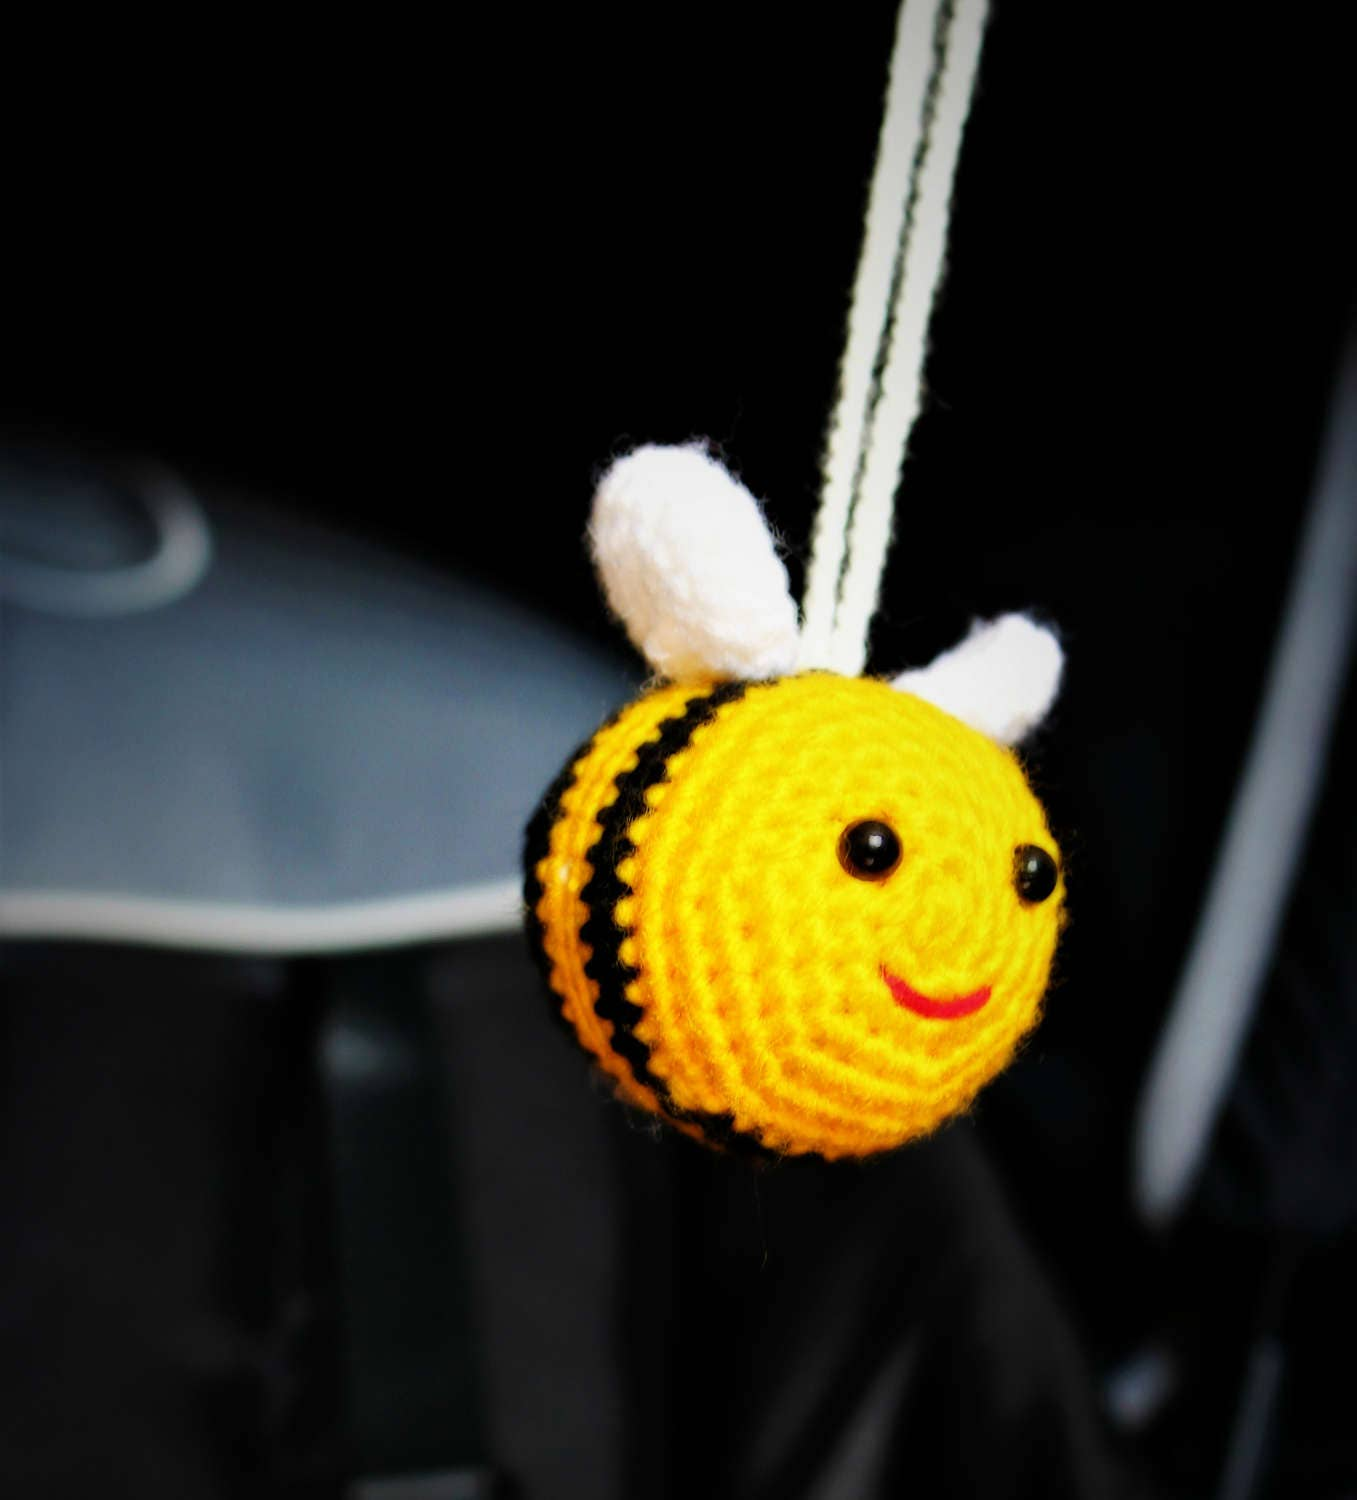 Bumble Bee Pram Toy  Toy Car Seat  Play Gym Toy  Crochet Bees Toy  Stroller Mobile  Pram Toy rattle baby toy